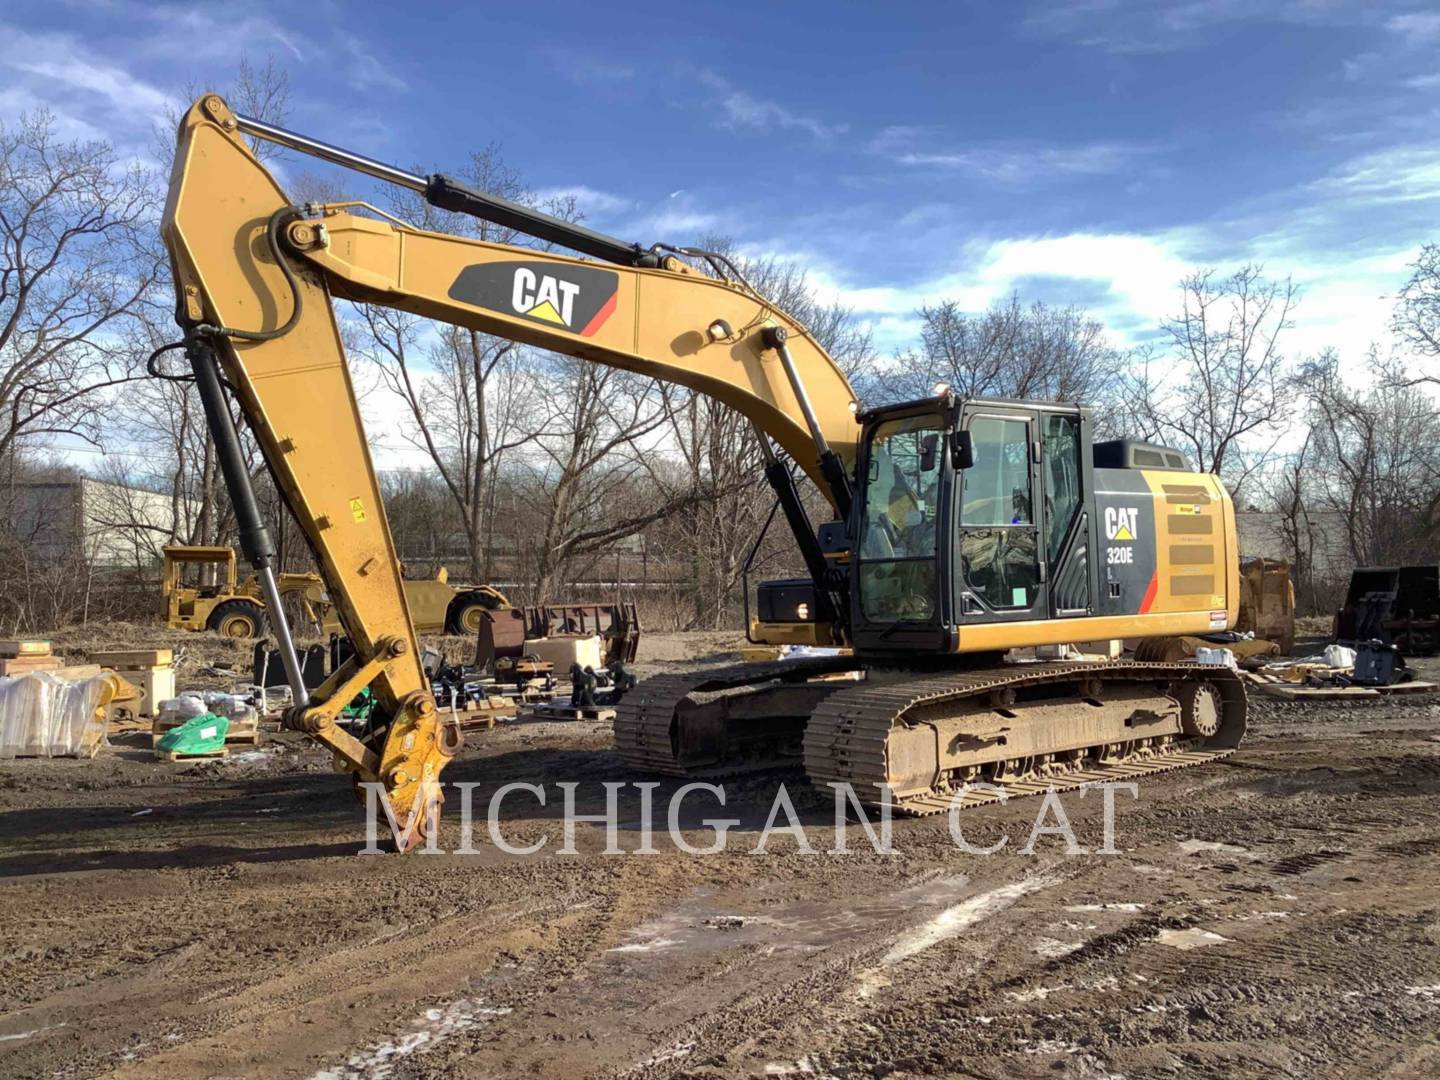 2013 Caterpillar 320EL Q Excavators and Mini Excavator